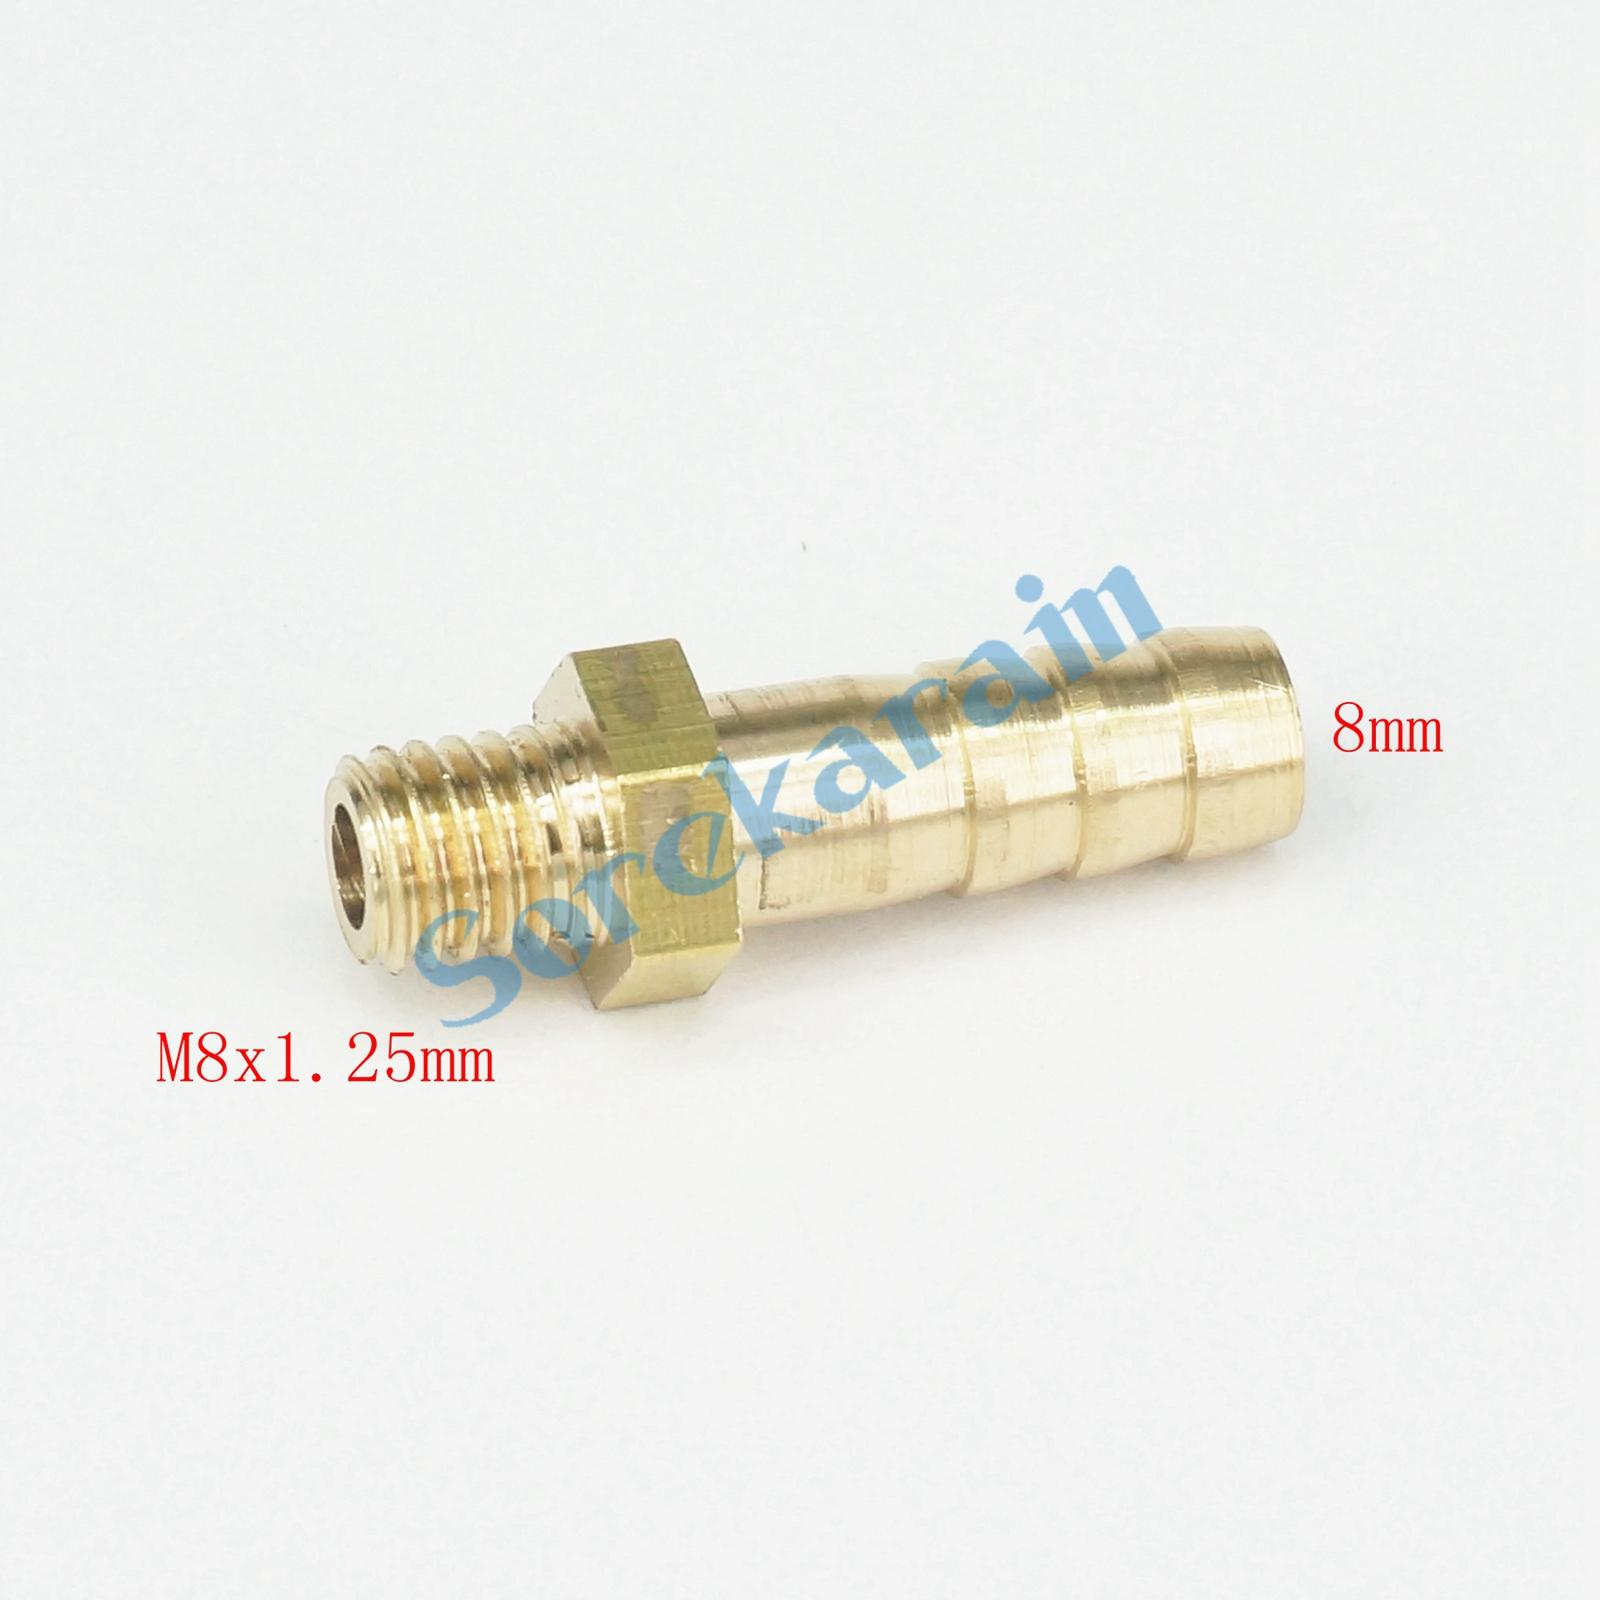 LOT 5 Hose Barb I/D 8mm x M8x1.25mm Metric Male Thread Brass coupler Splicer Connector fitting for Fuel Gas Water